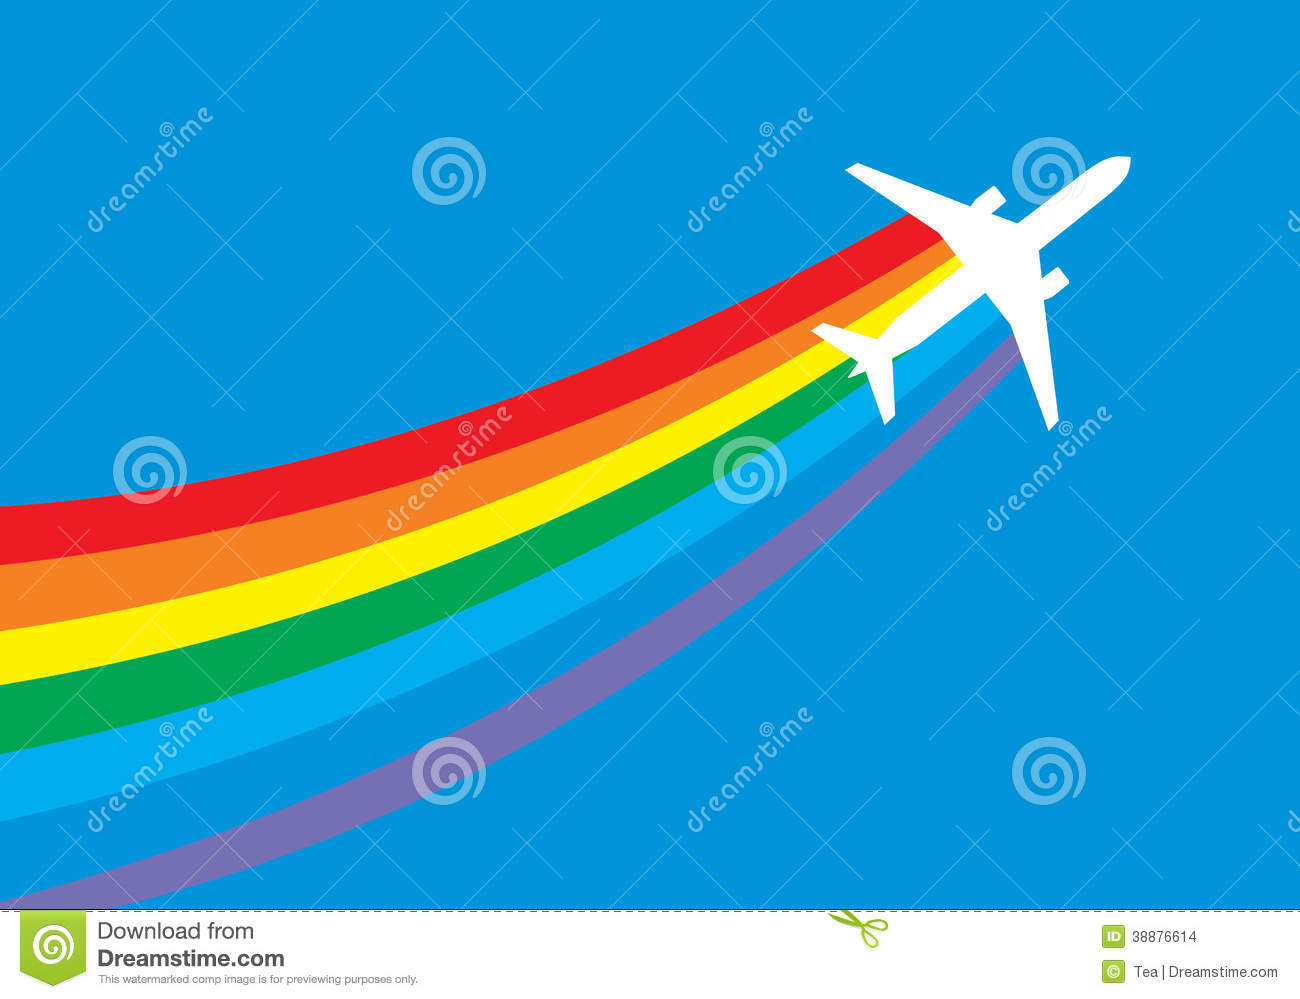 Jet Airplane With Rainbow Trail Stock Vector - Image: 38876614